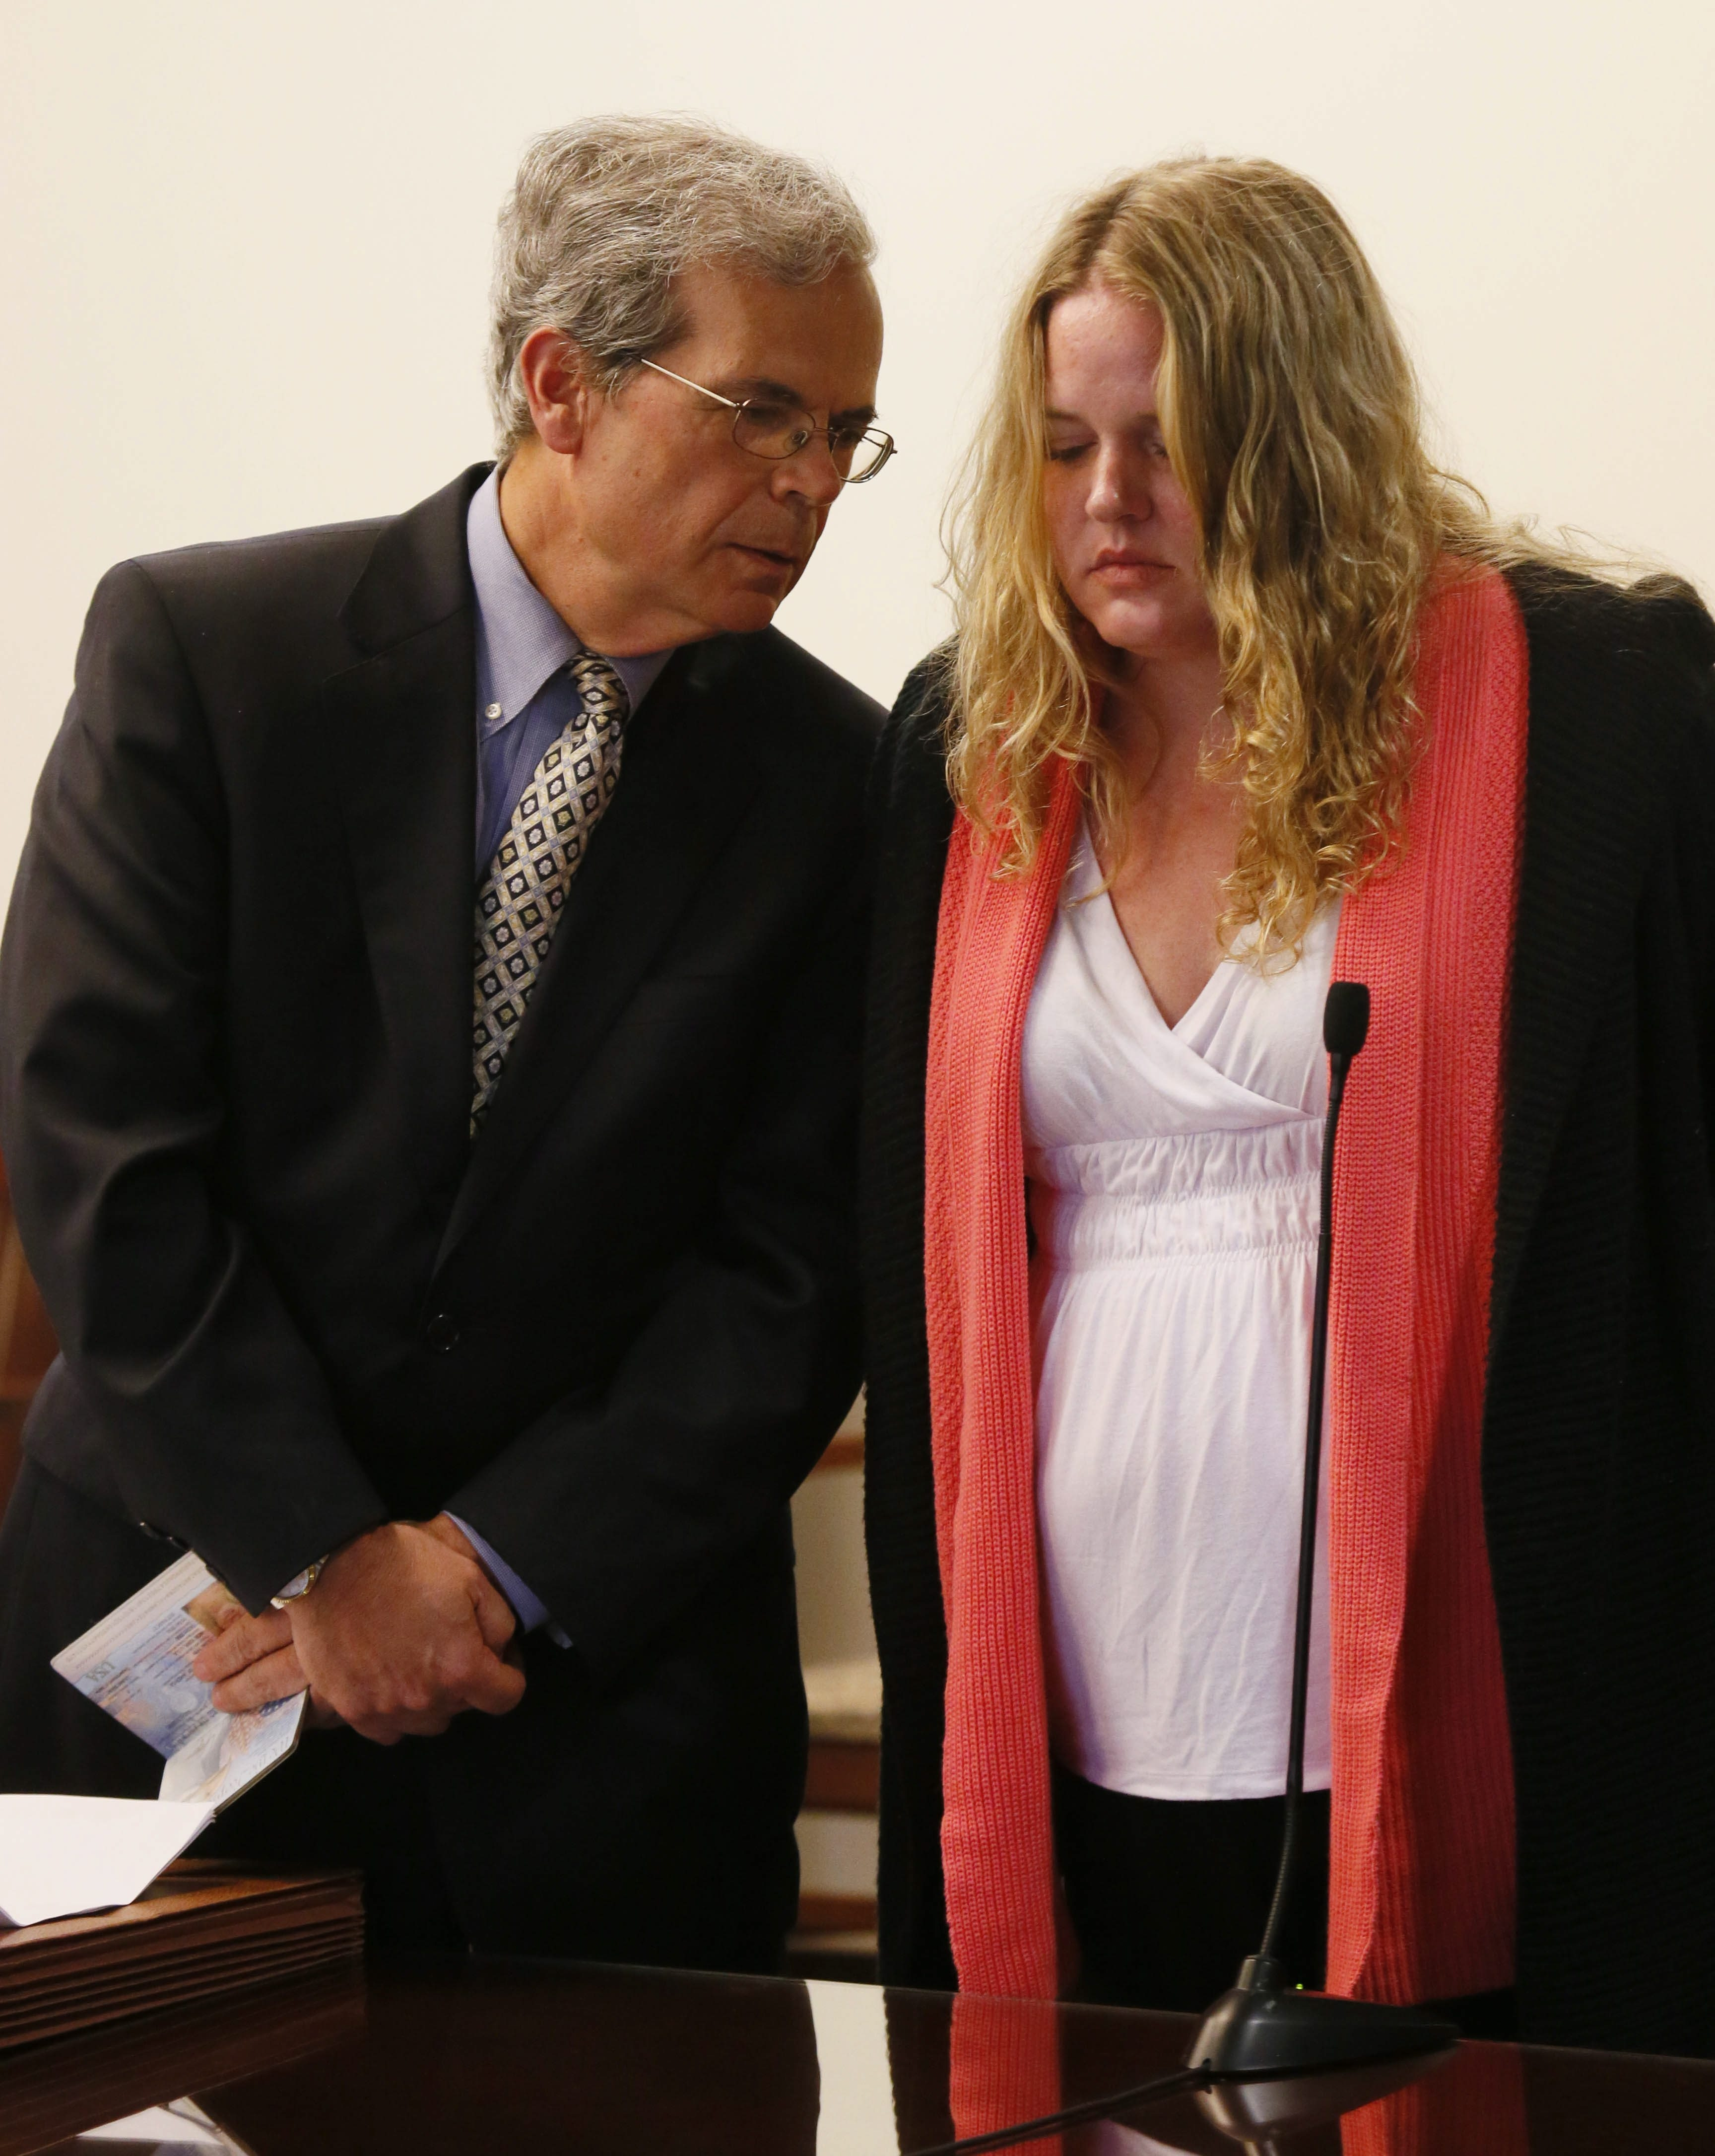 With defense attorney John Nuchereno at her side, Candace Cartagena is shown at her arraignment on charges that she murdered her 8-year-old daughter, Bianca, in November 2010.